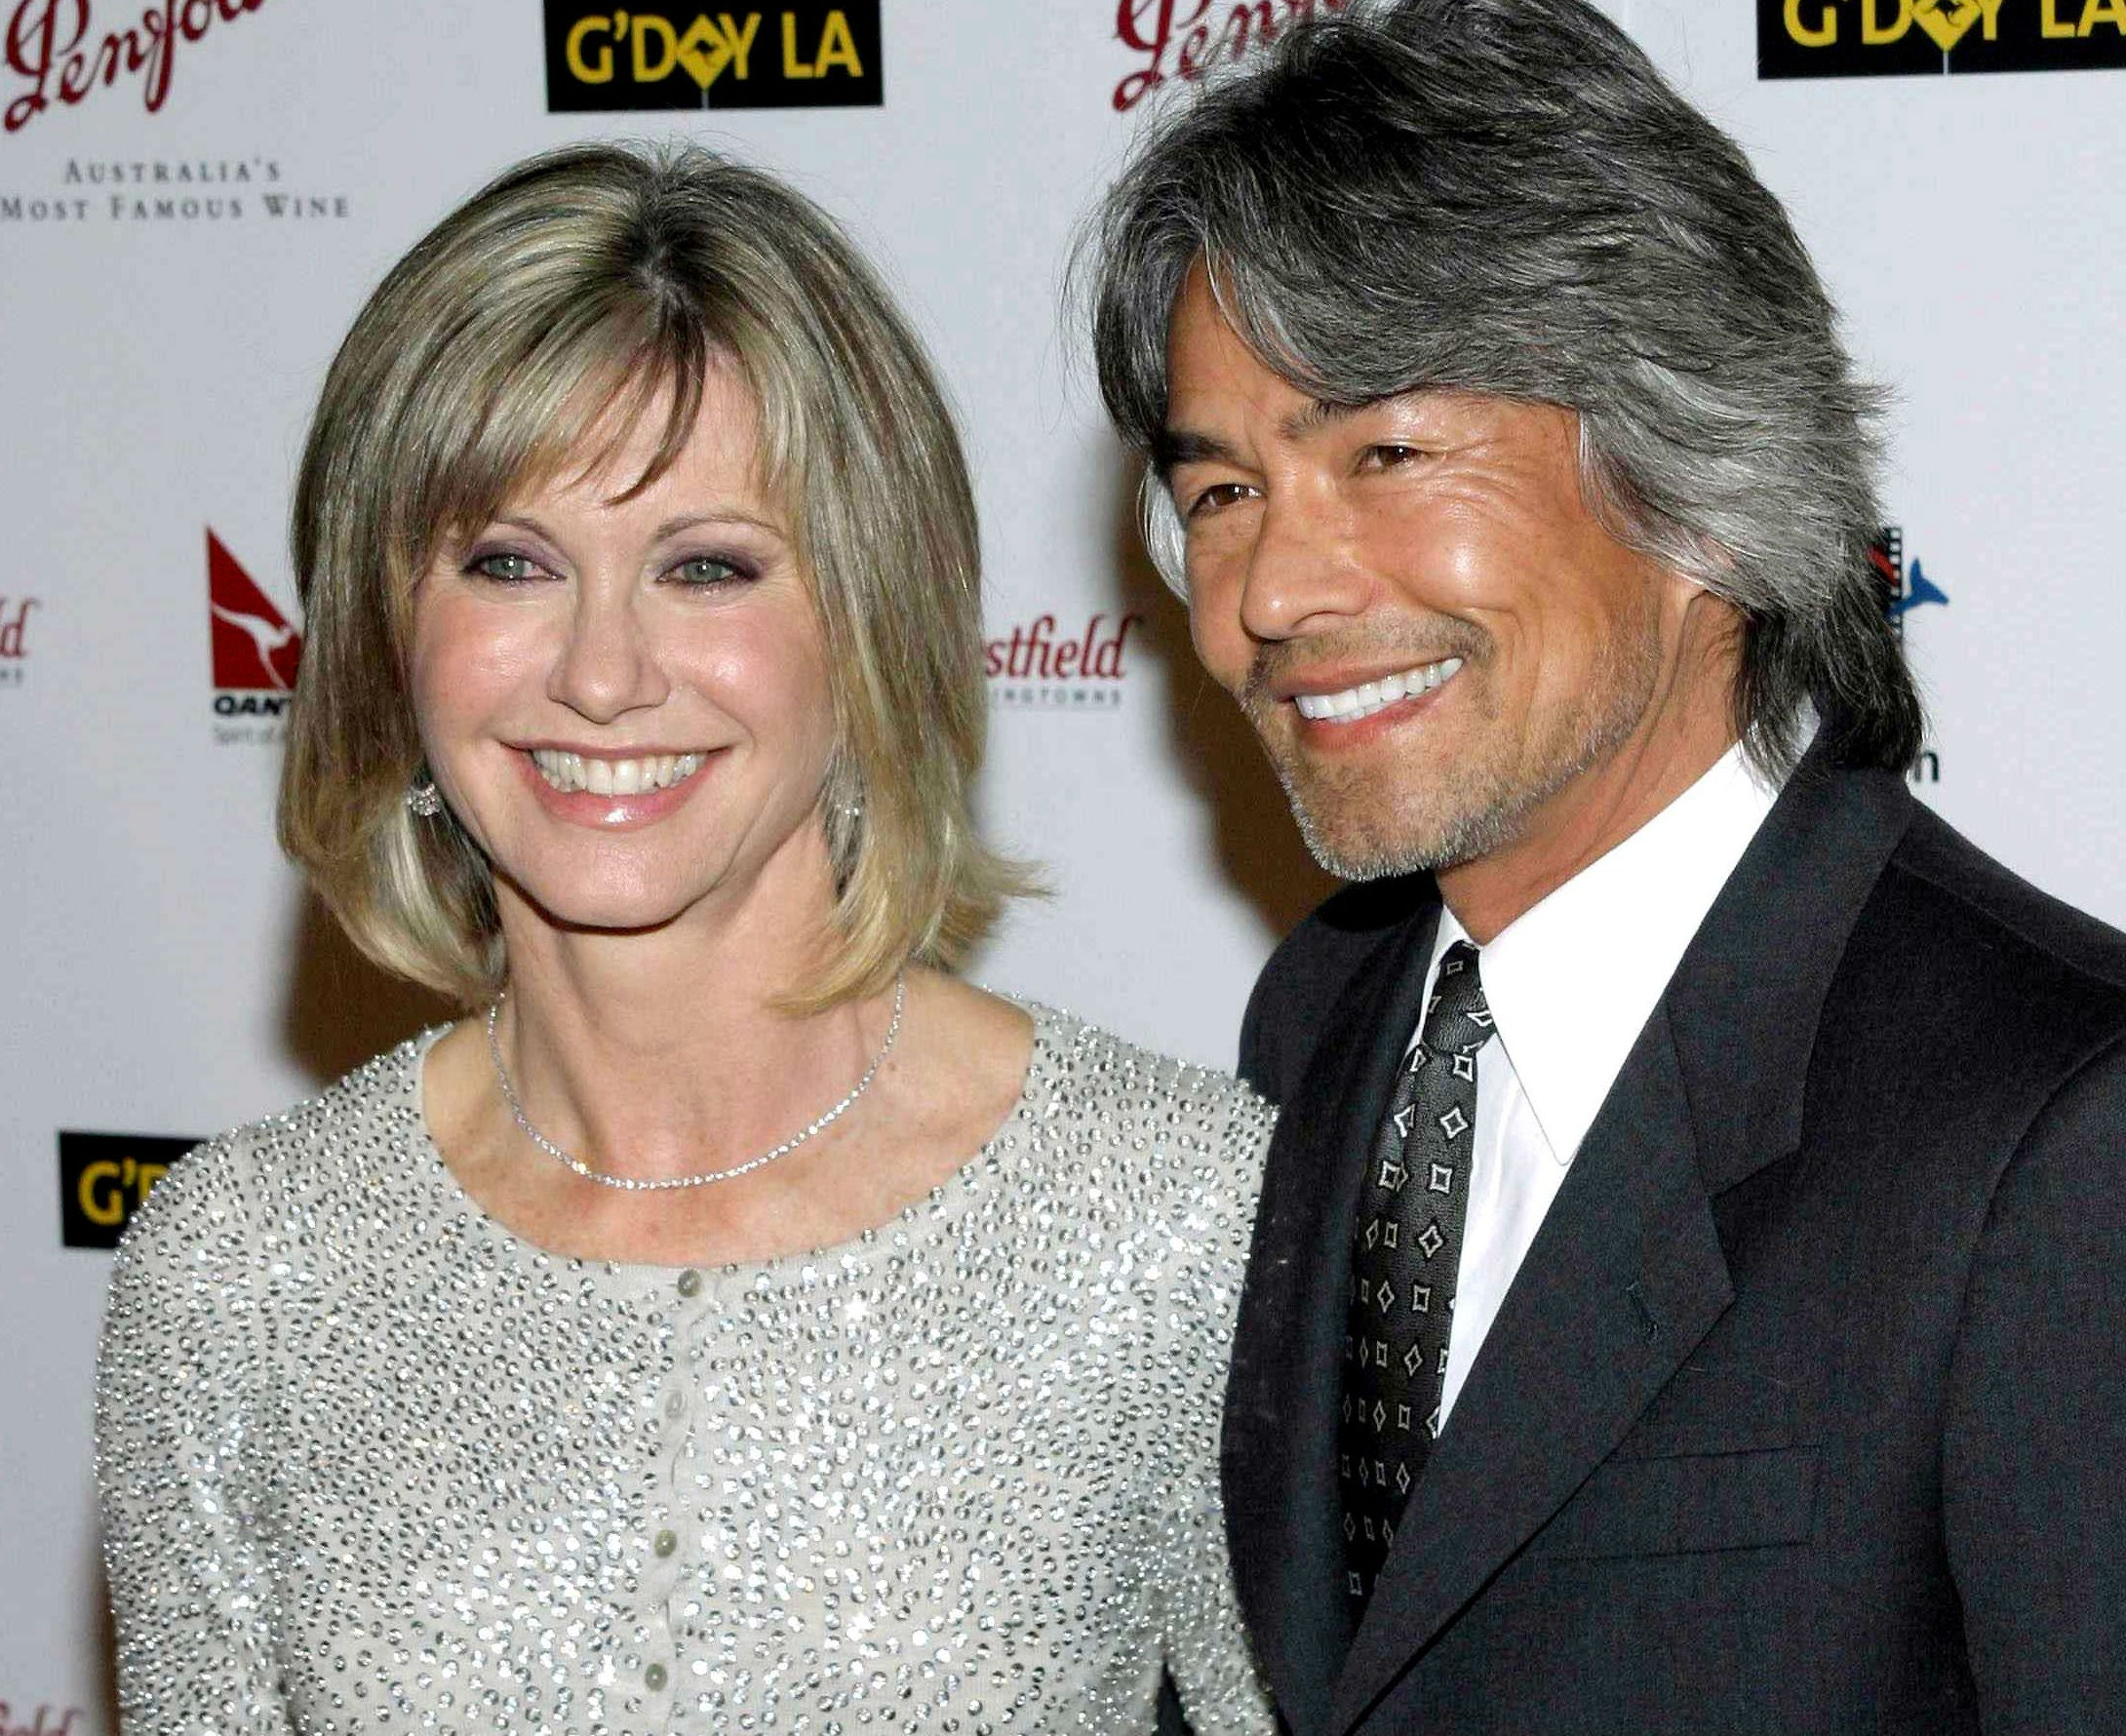 Olivia Newton-John's ex-boyfriend found after going missing 12 years ago